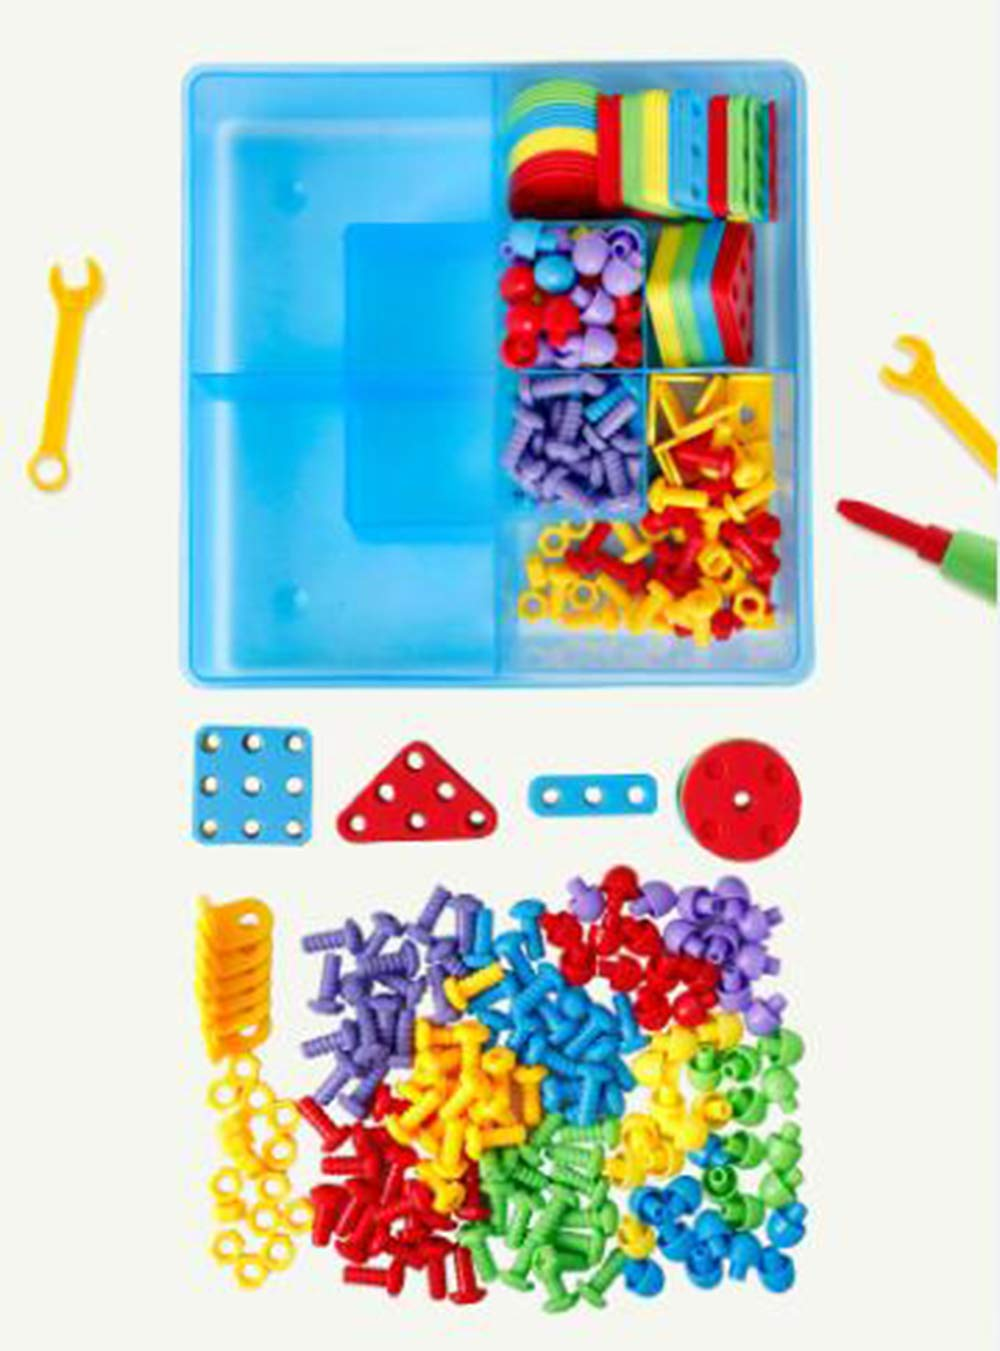 Sopu Kids Building Games Set Desigh & Drill Activity Center, Electric Drill Screwdriver Tool Set Educational 3D Building Blocks Construction Games Toys for Boys & Girls Age 3 - 15 Years Old